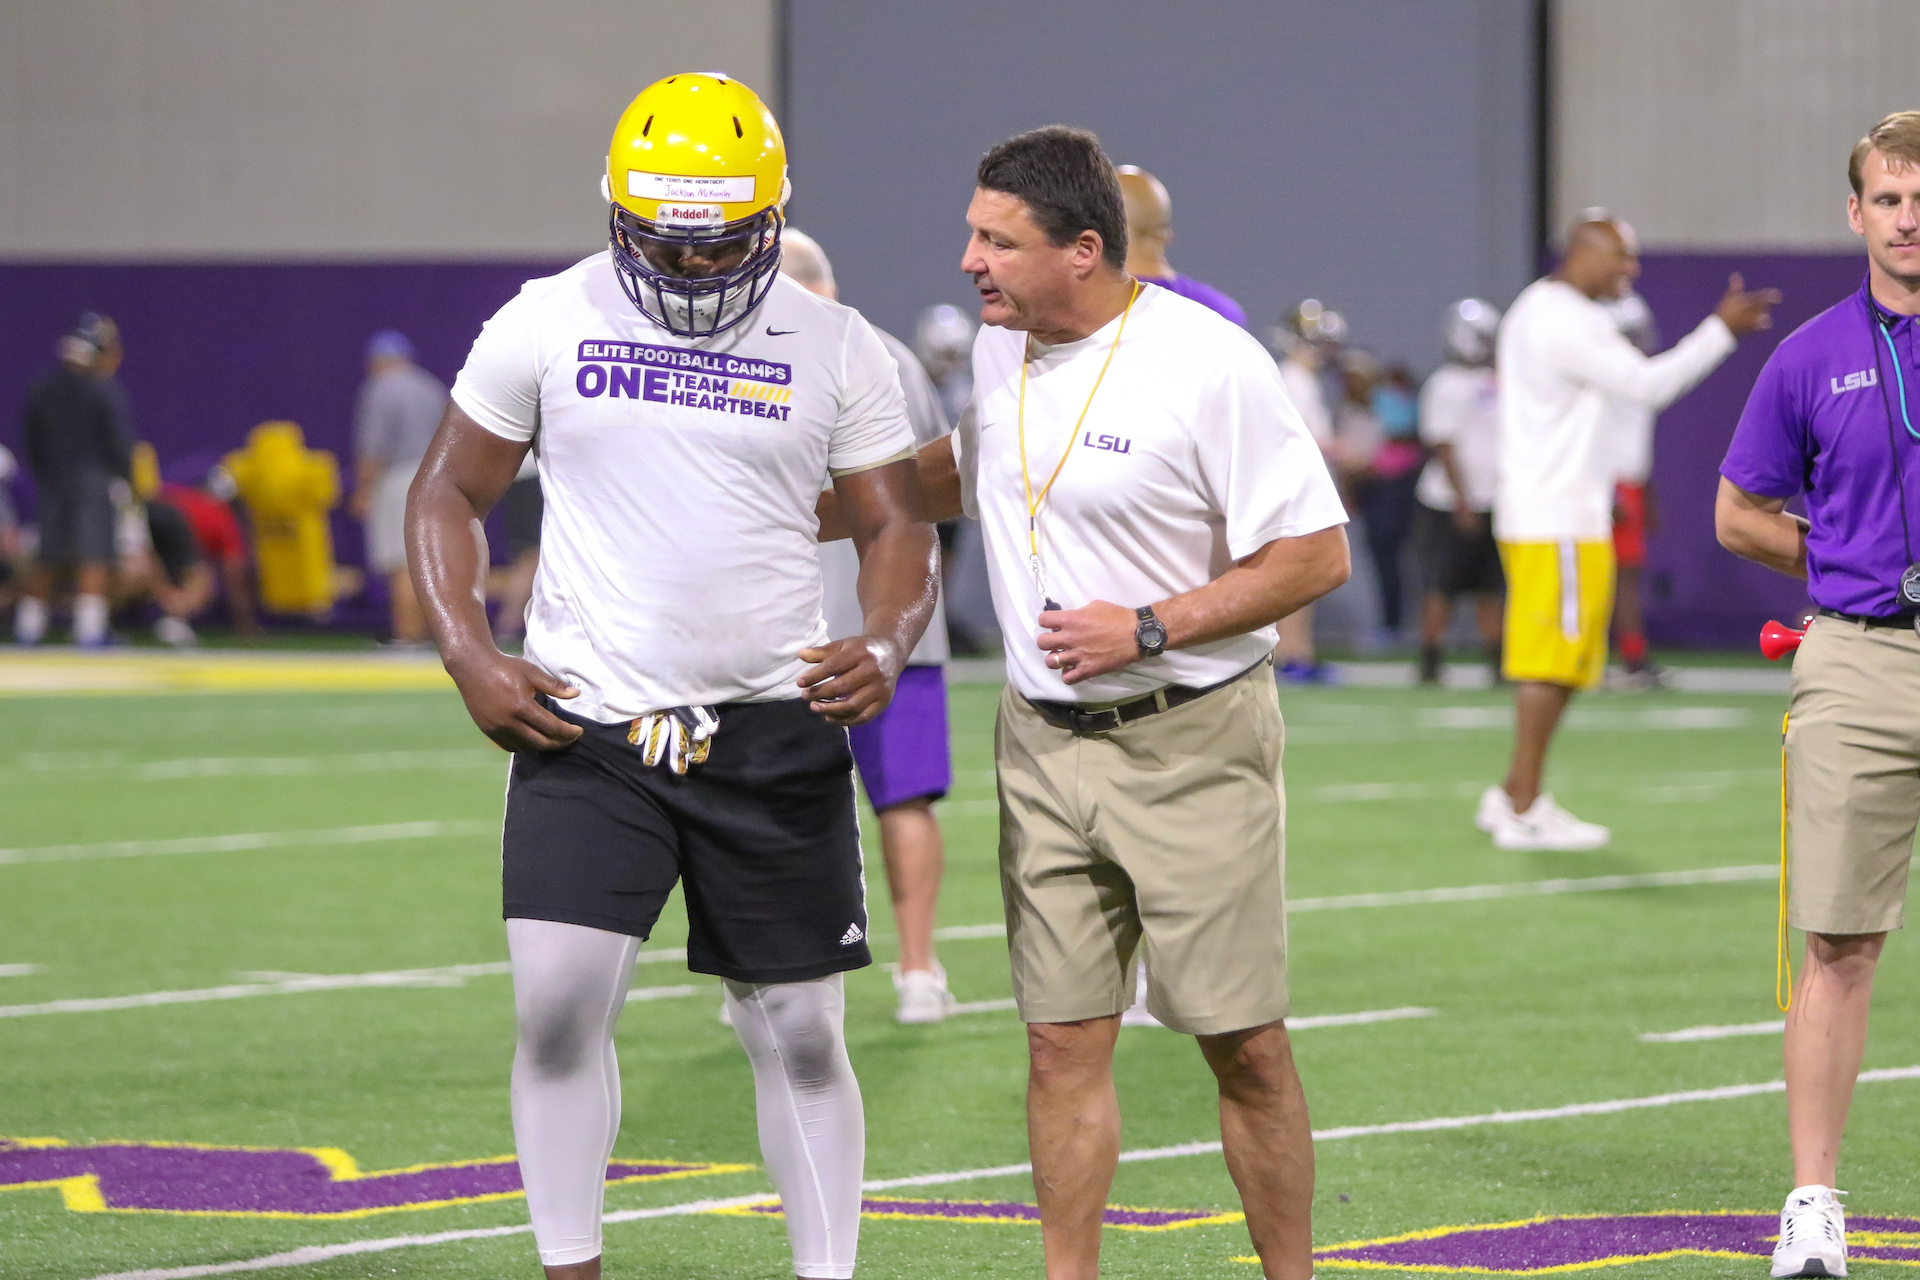 Top prospects on campus for LSU Elite Camp